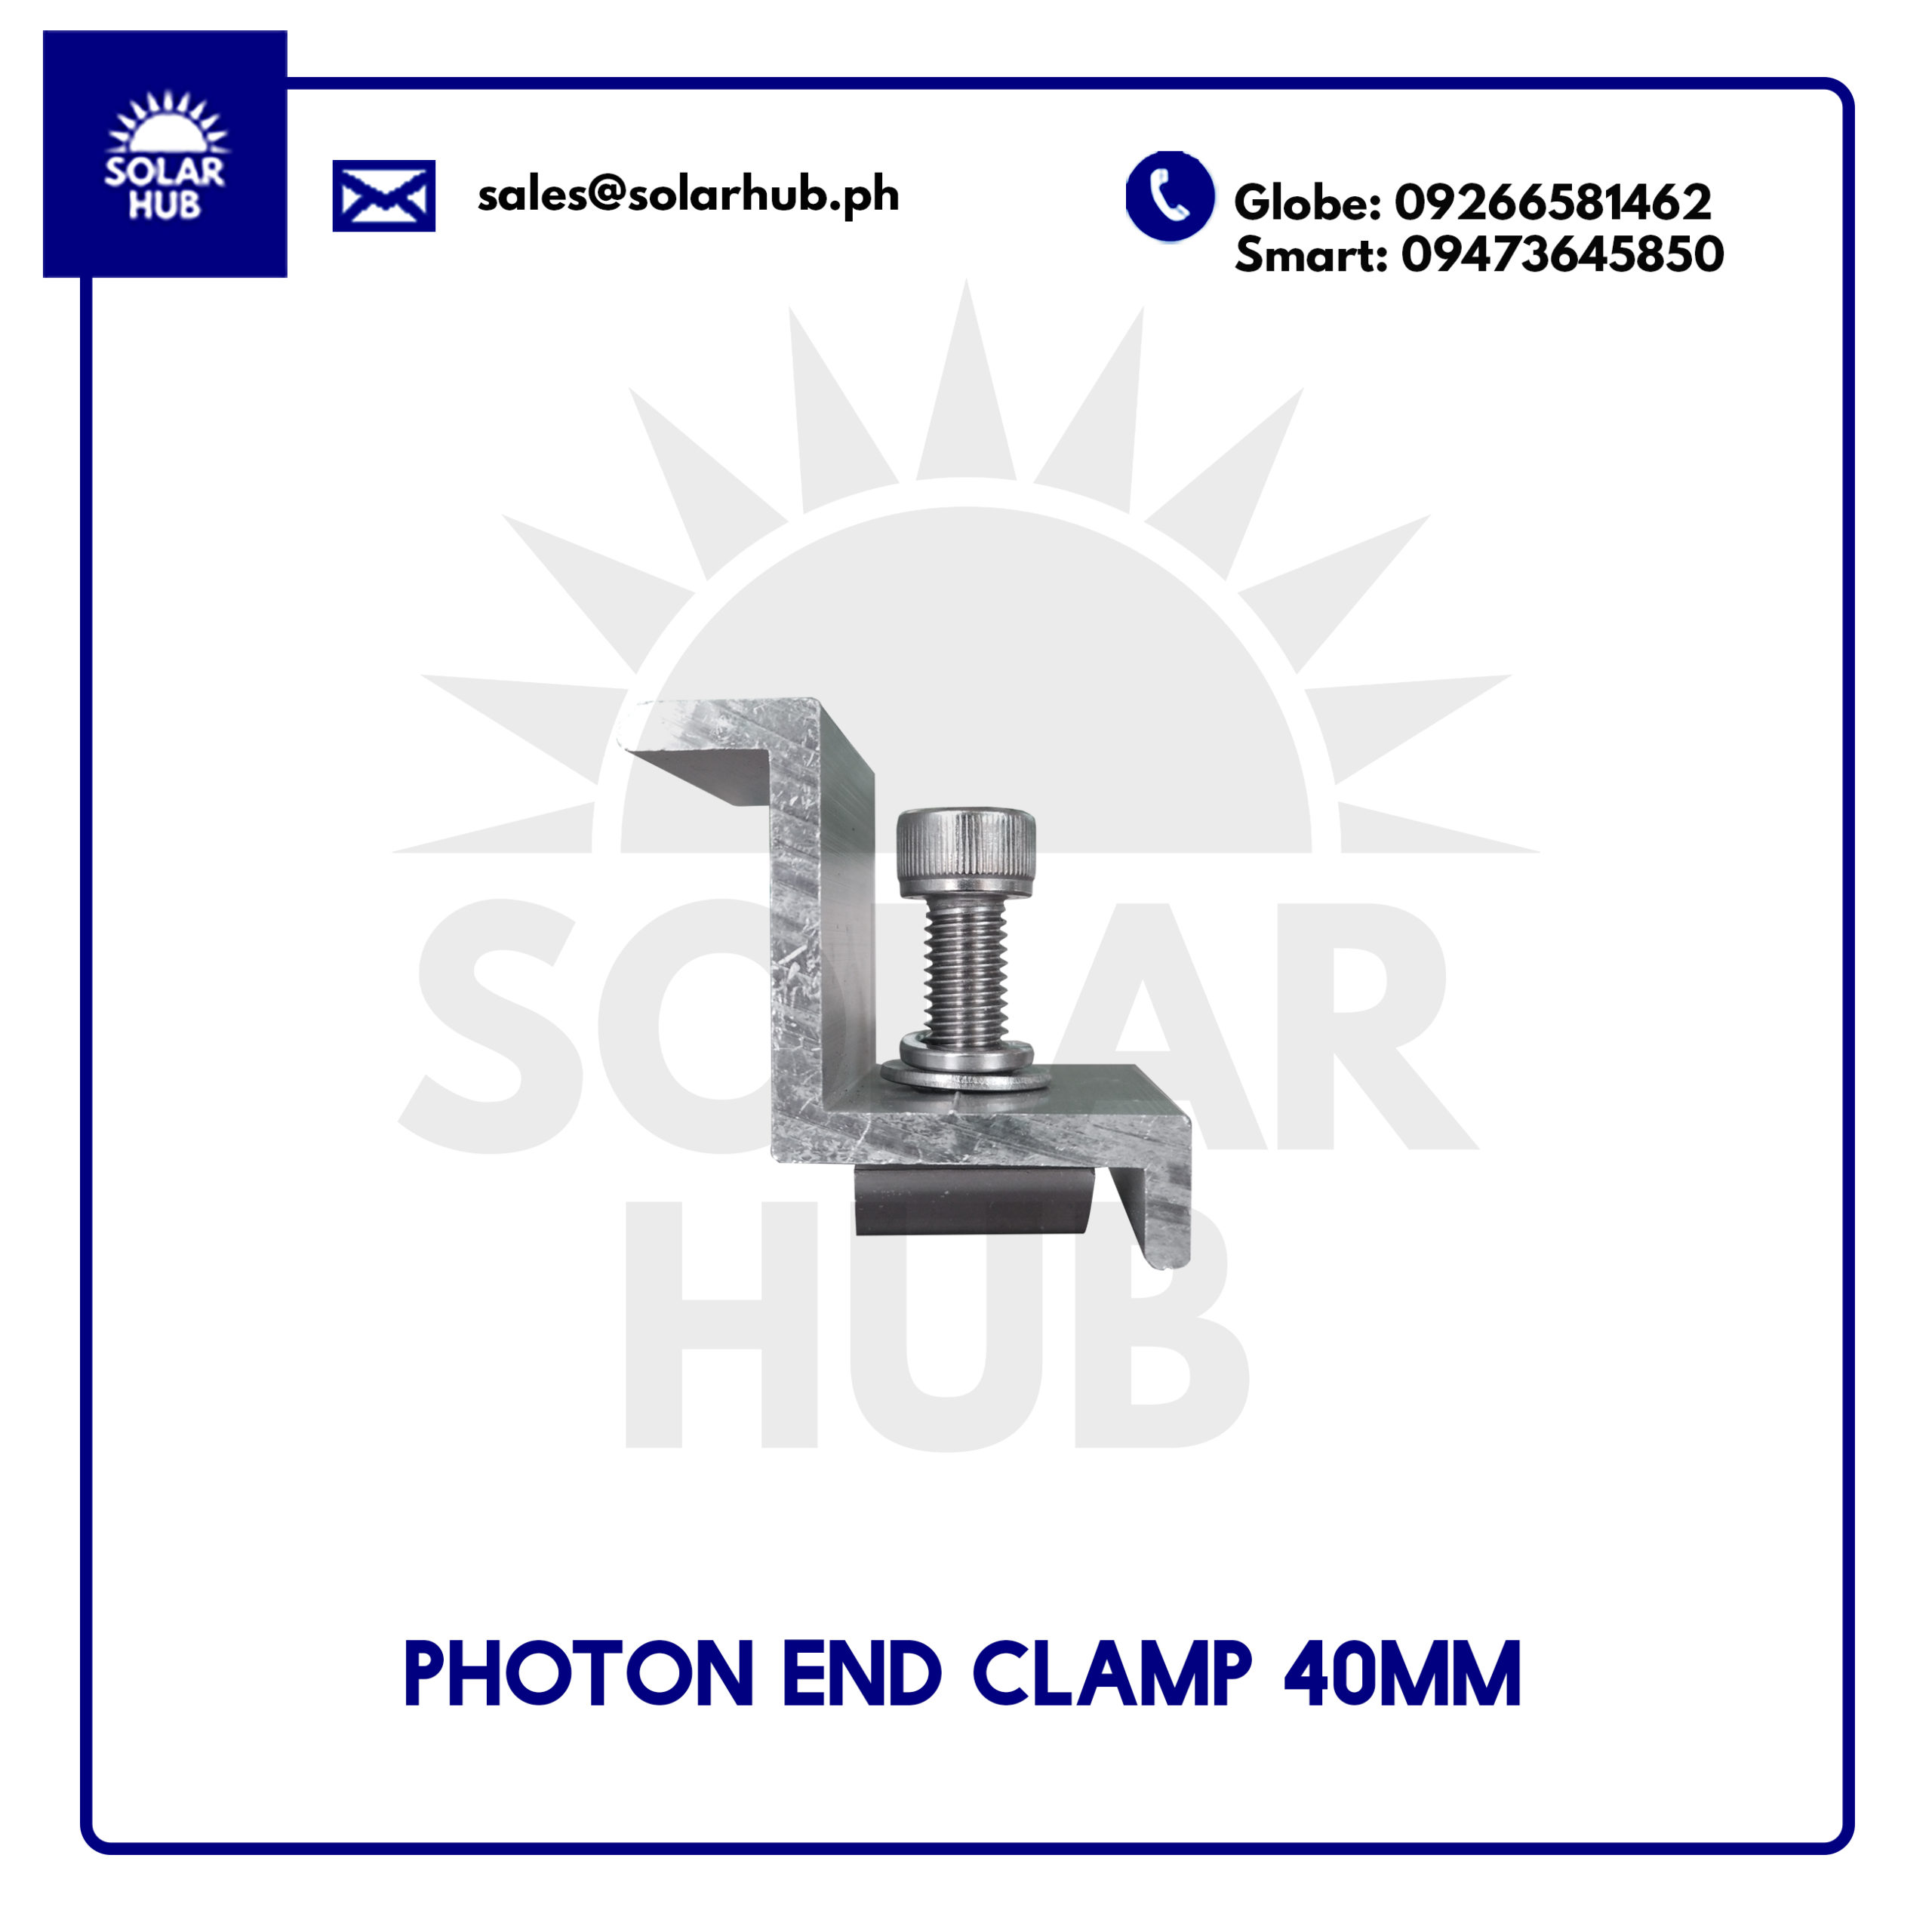 Photon End Clamp 40mm